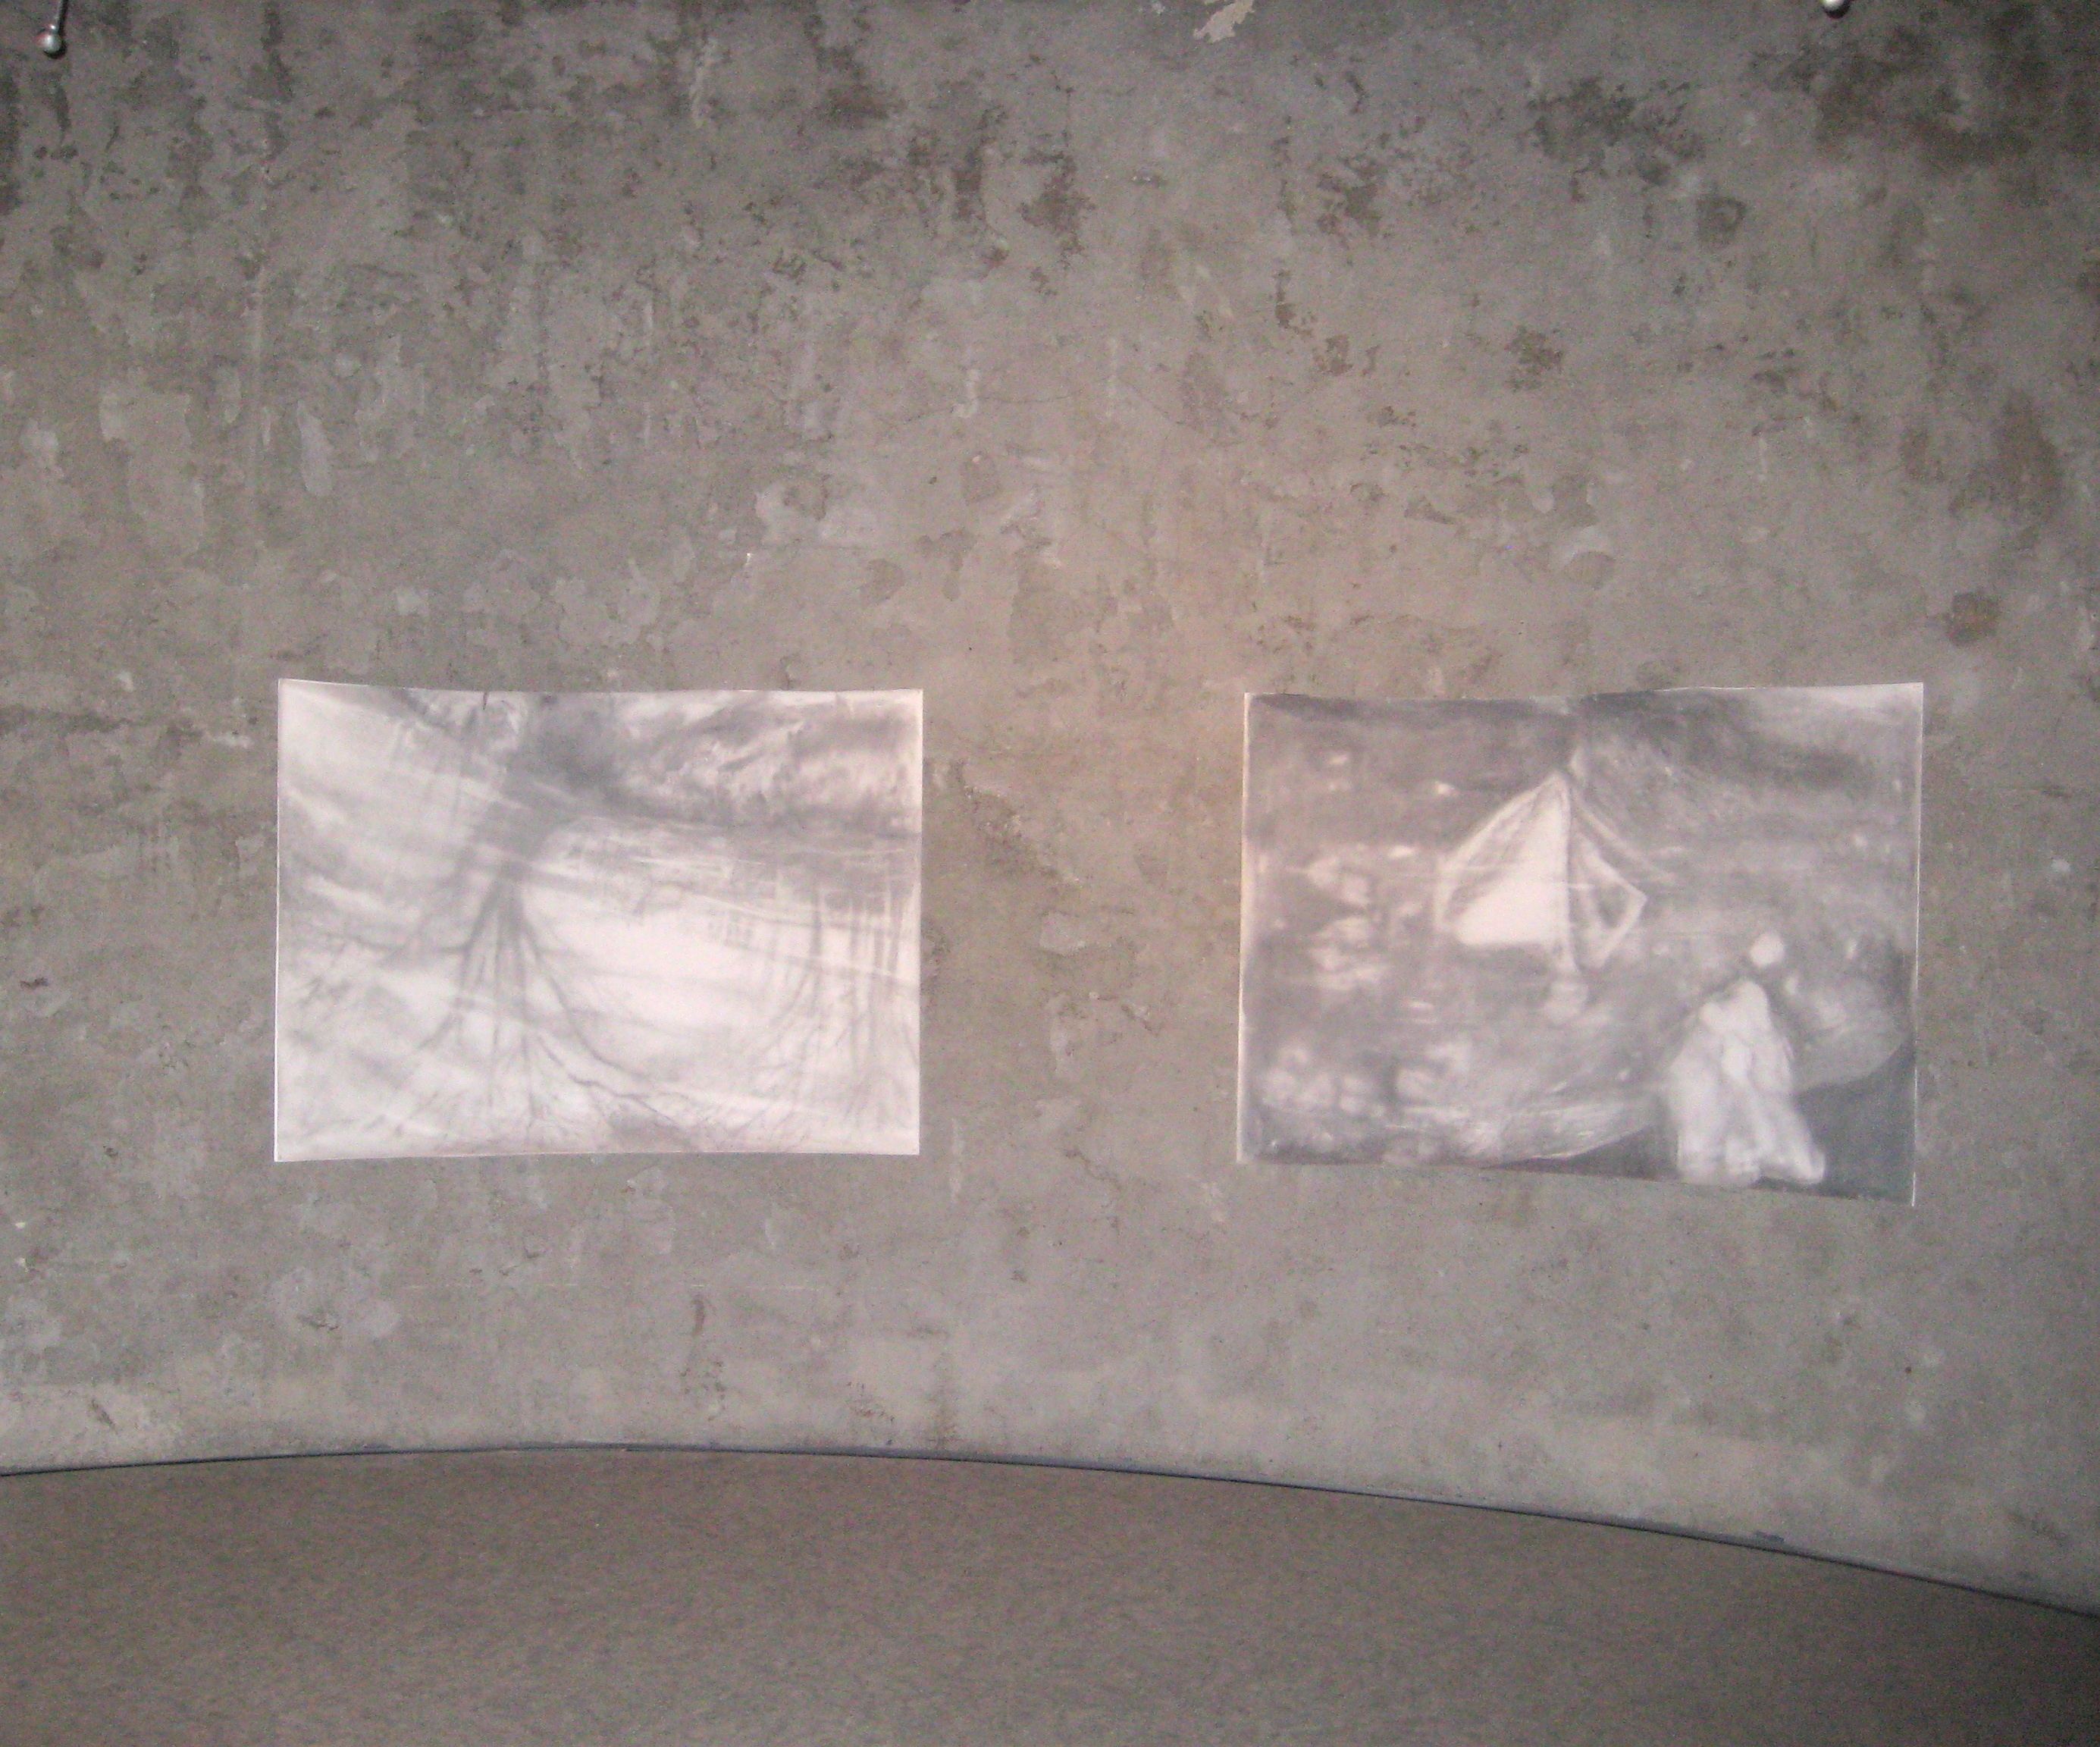 Carita Savolainen, Airscape on Water, drawing and sound installation in the Watertower of Kotka, Finland 2012